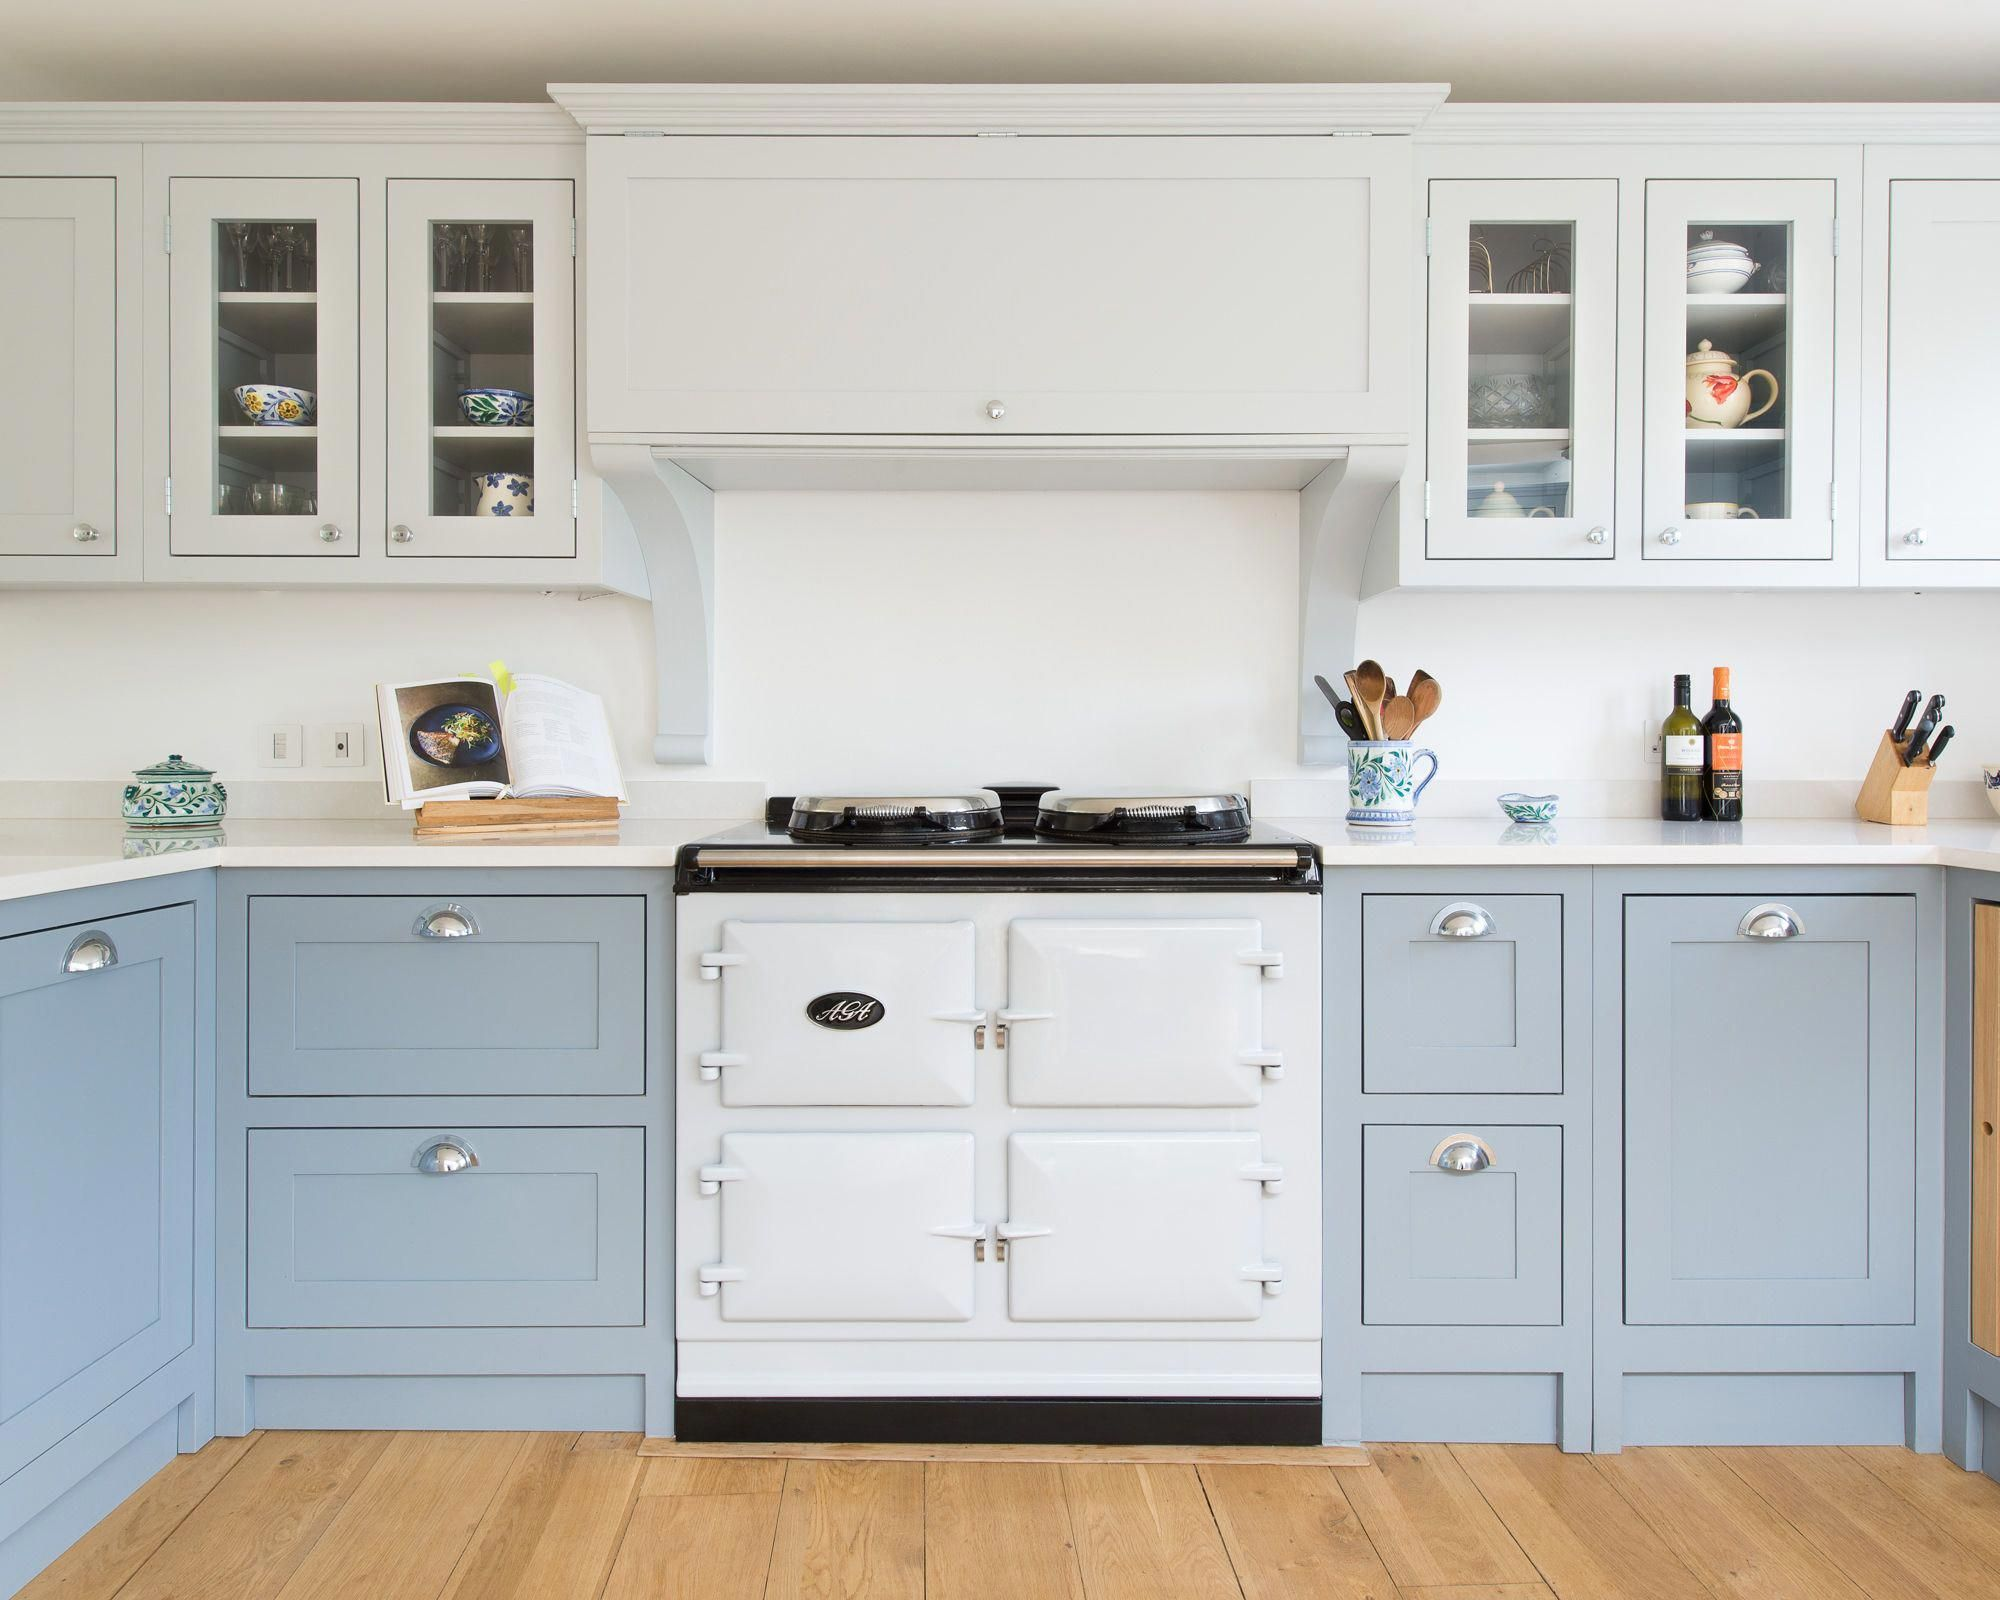 This Pretty Kitchen Is Hand Painted In Pale Blue And White The White Aga And Belf Shaker Style Kitchen Cabinets Custom Kitchen Cabinets Kitchen Cabinet Styles